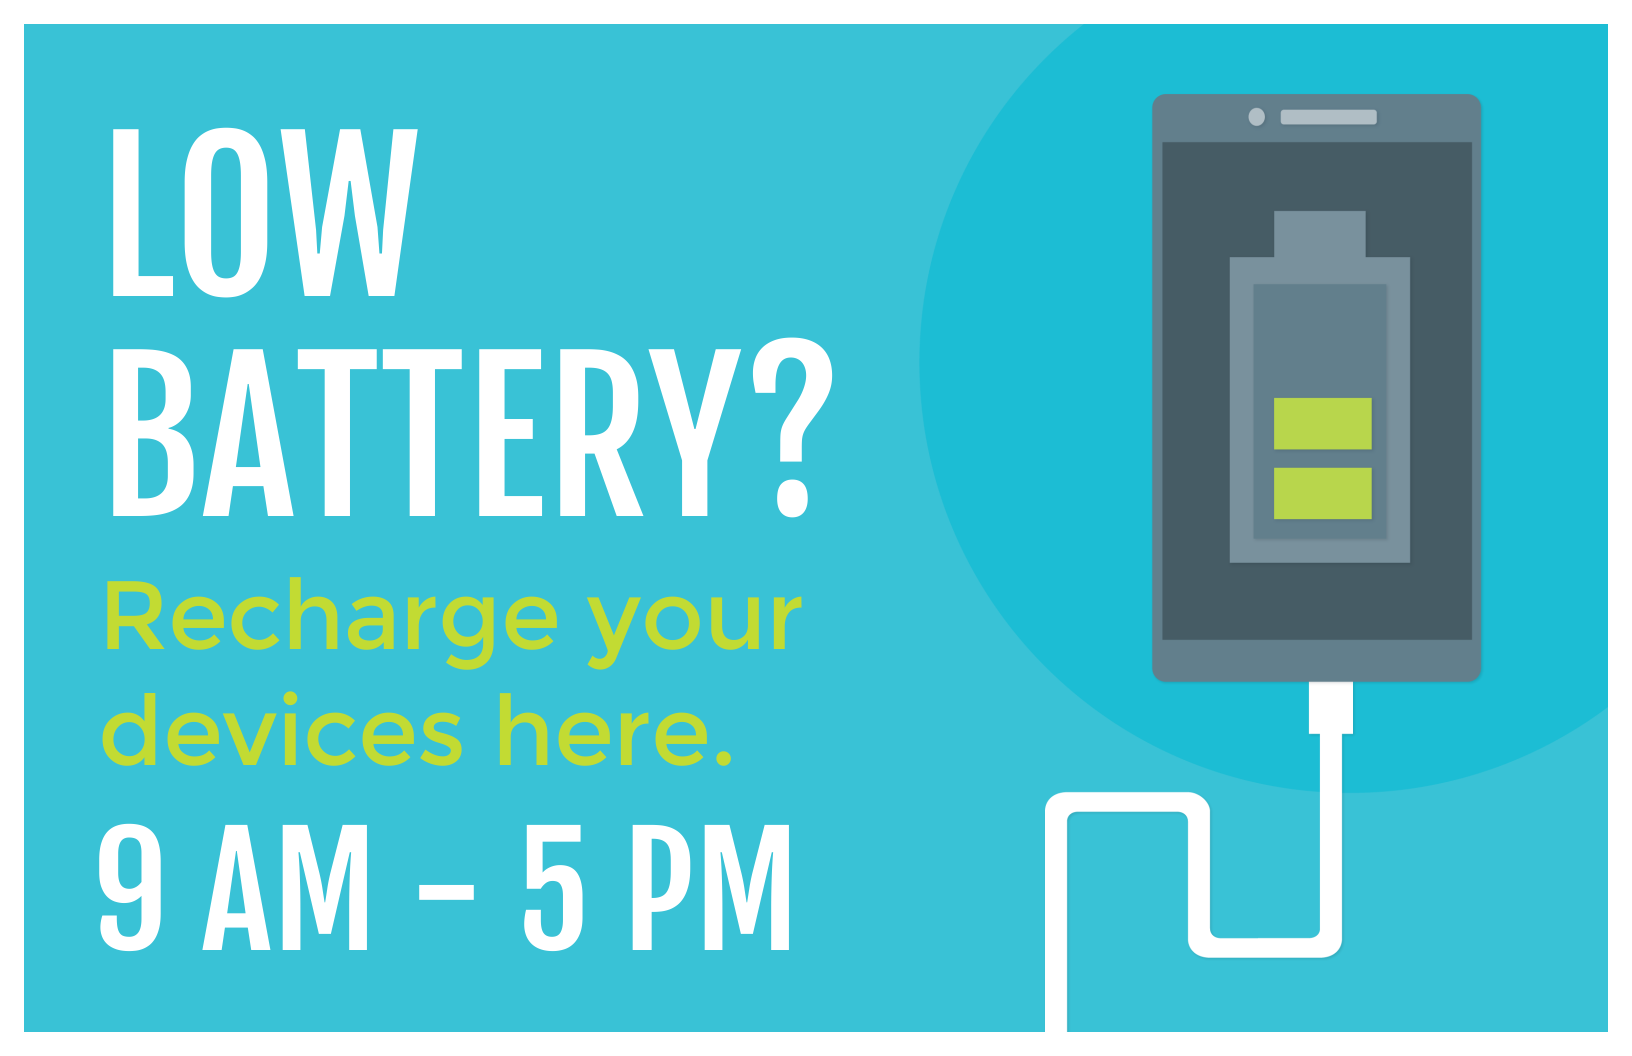 Low battery? Charge your device here 9 AM to 5 PM